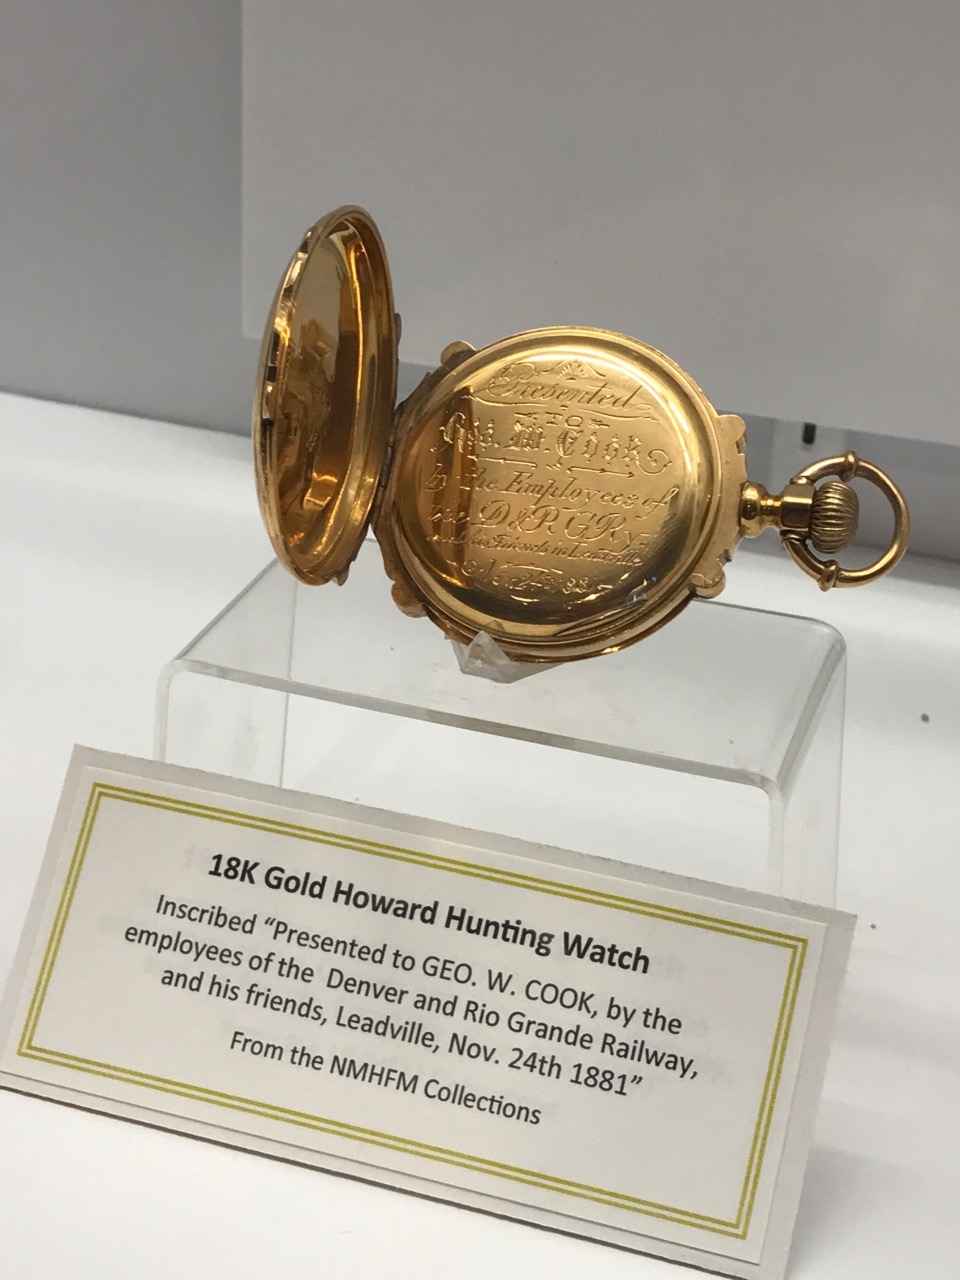 18K Gold Howard Hunting Watch